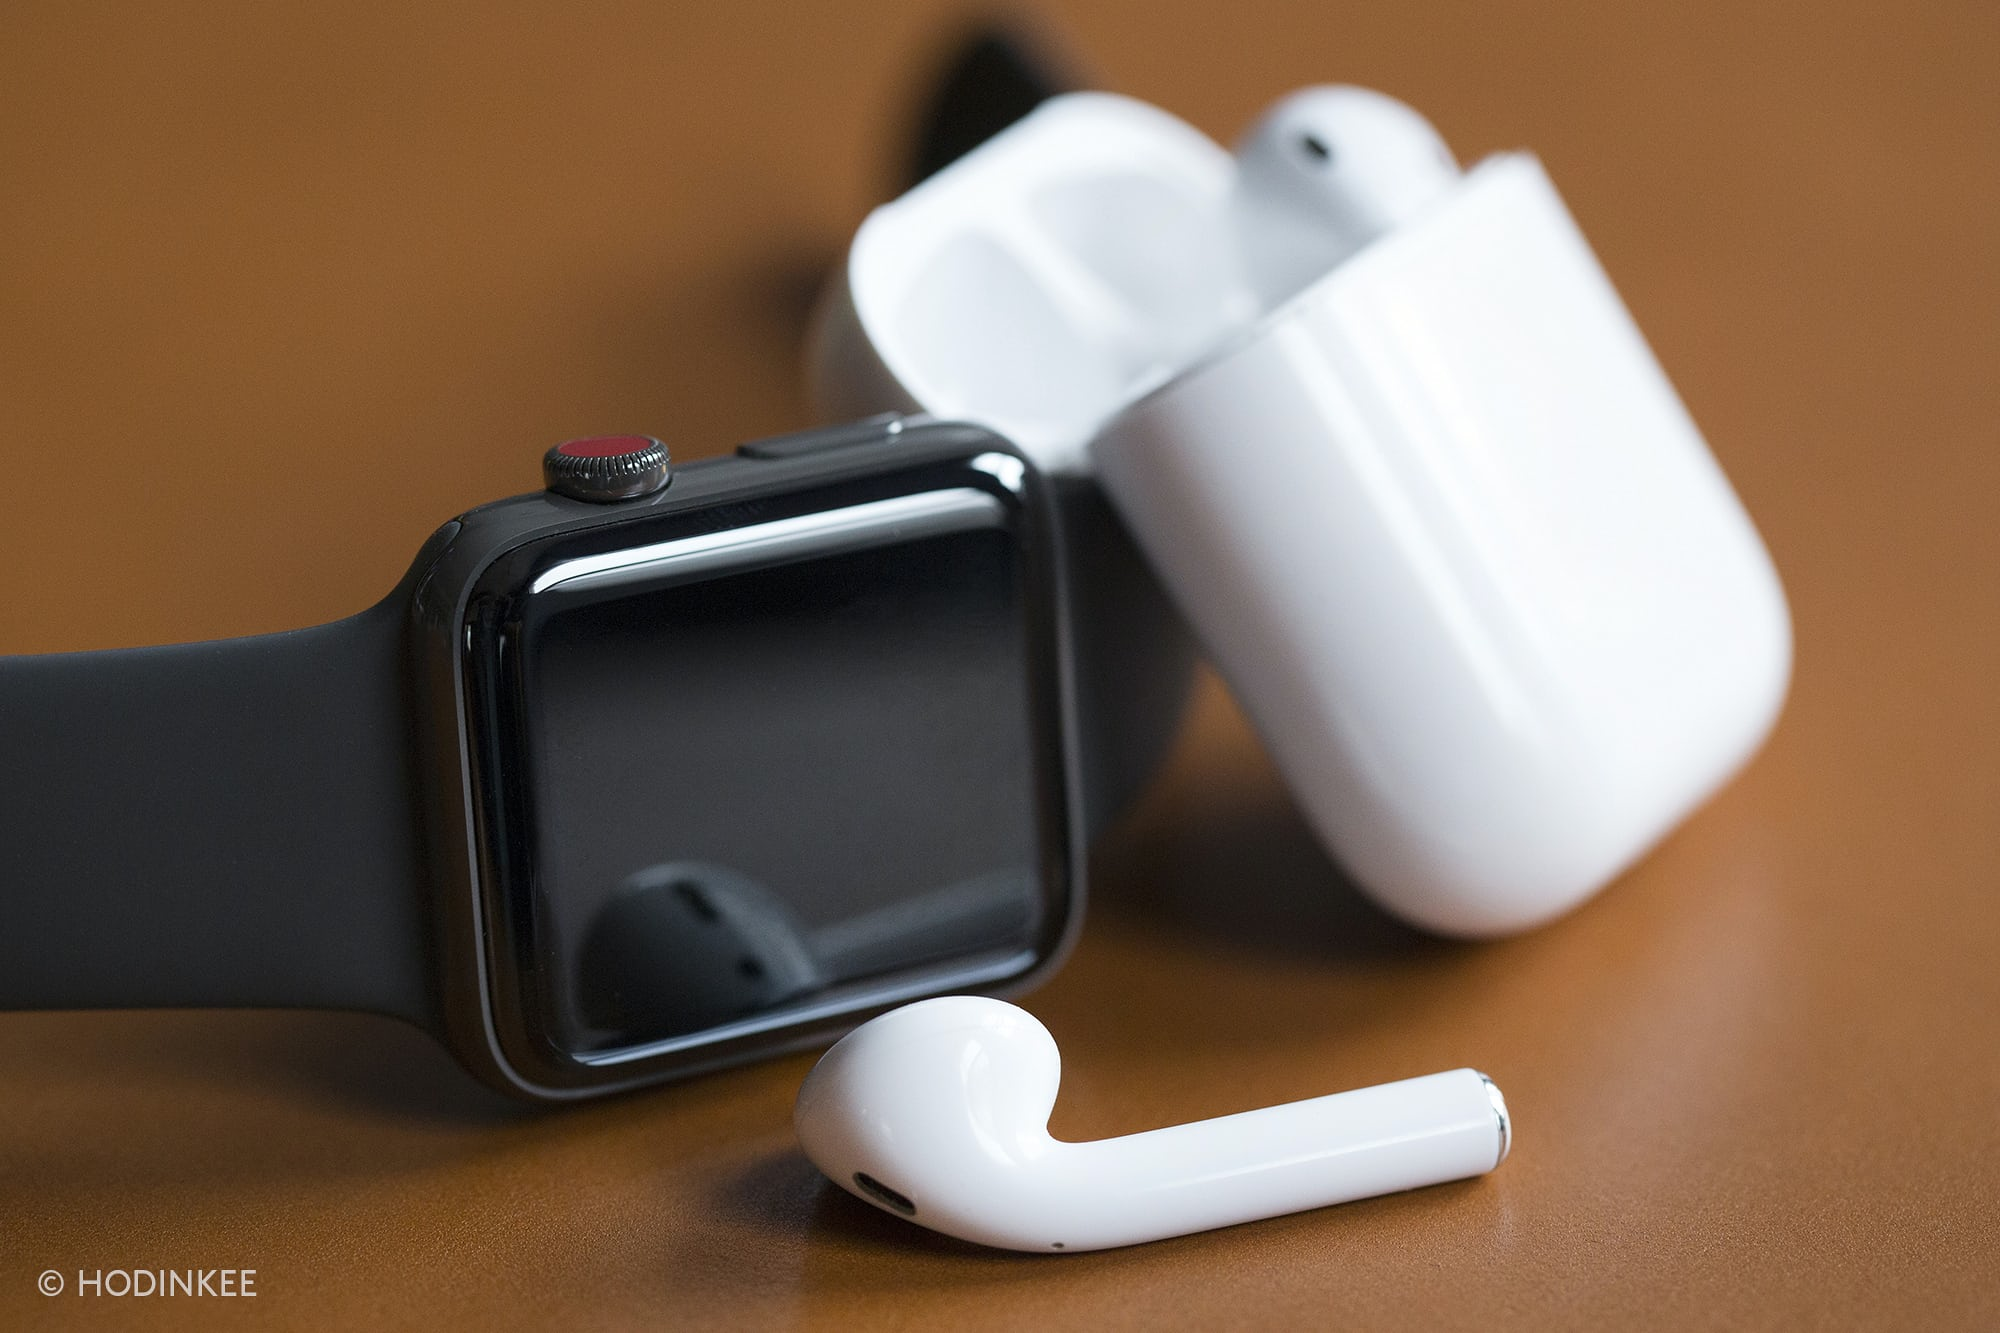 apple watch series 3 edition airpods A Week On The Wrist: The Apple Watch Series 3 Edition A Week On The Wrist: The Apple Watch Series 3 Edition B89A4918 copy